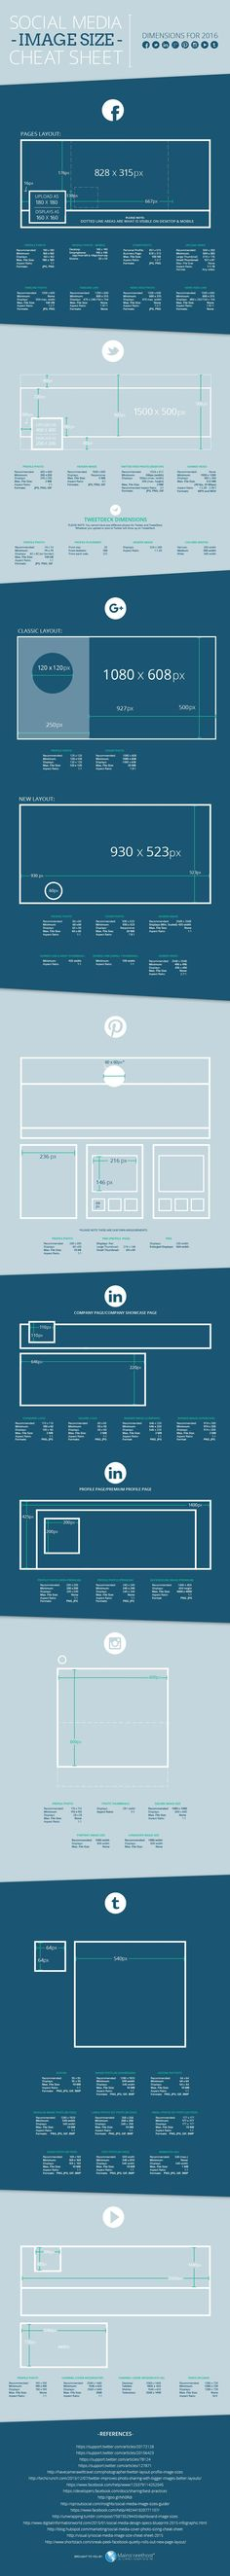 Social Media Image Size Cheat Sheet for 2016